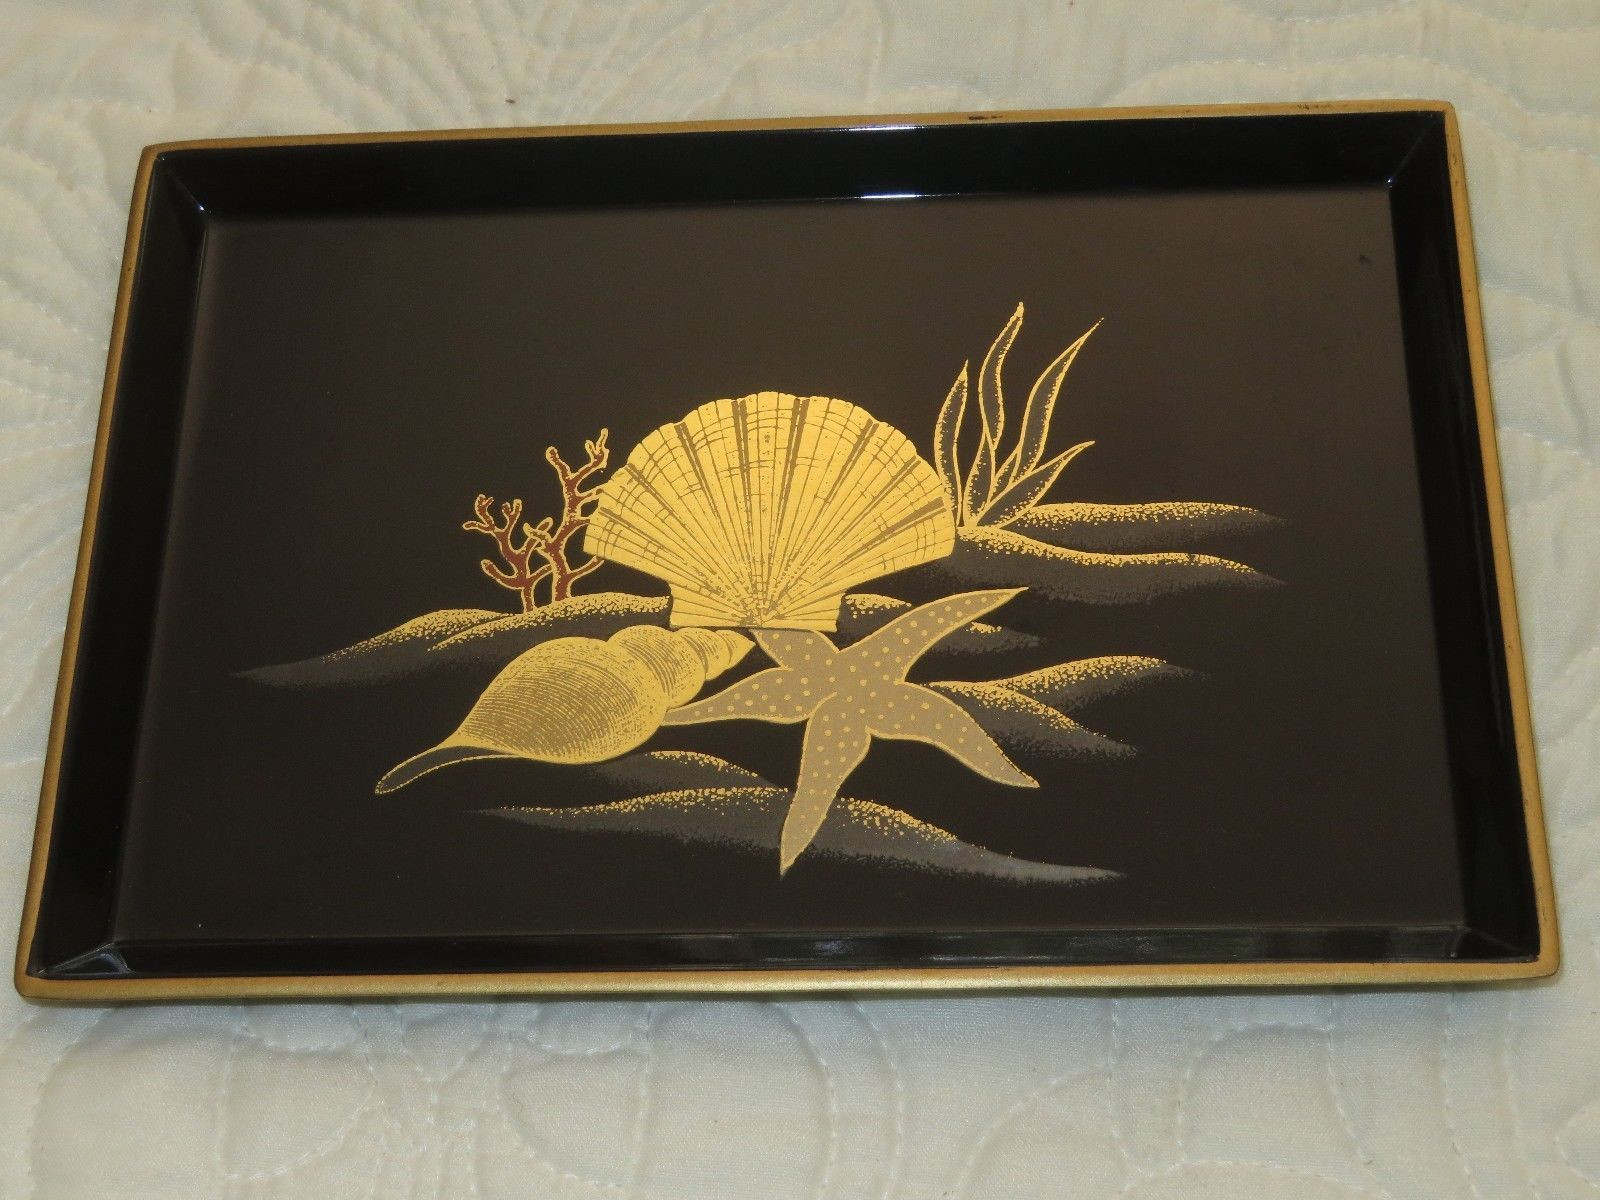 otagiri japan bud vase of vintage otagiri japan lacquerware tray black w gold shells coral regarding vintage otagiri japan lacquerware tray black w gold shells coral starfish 7 2 ebay